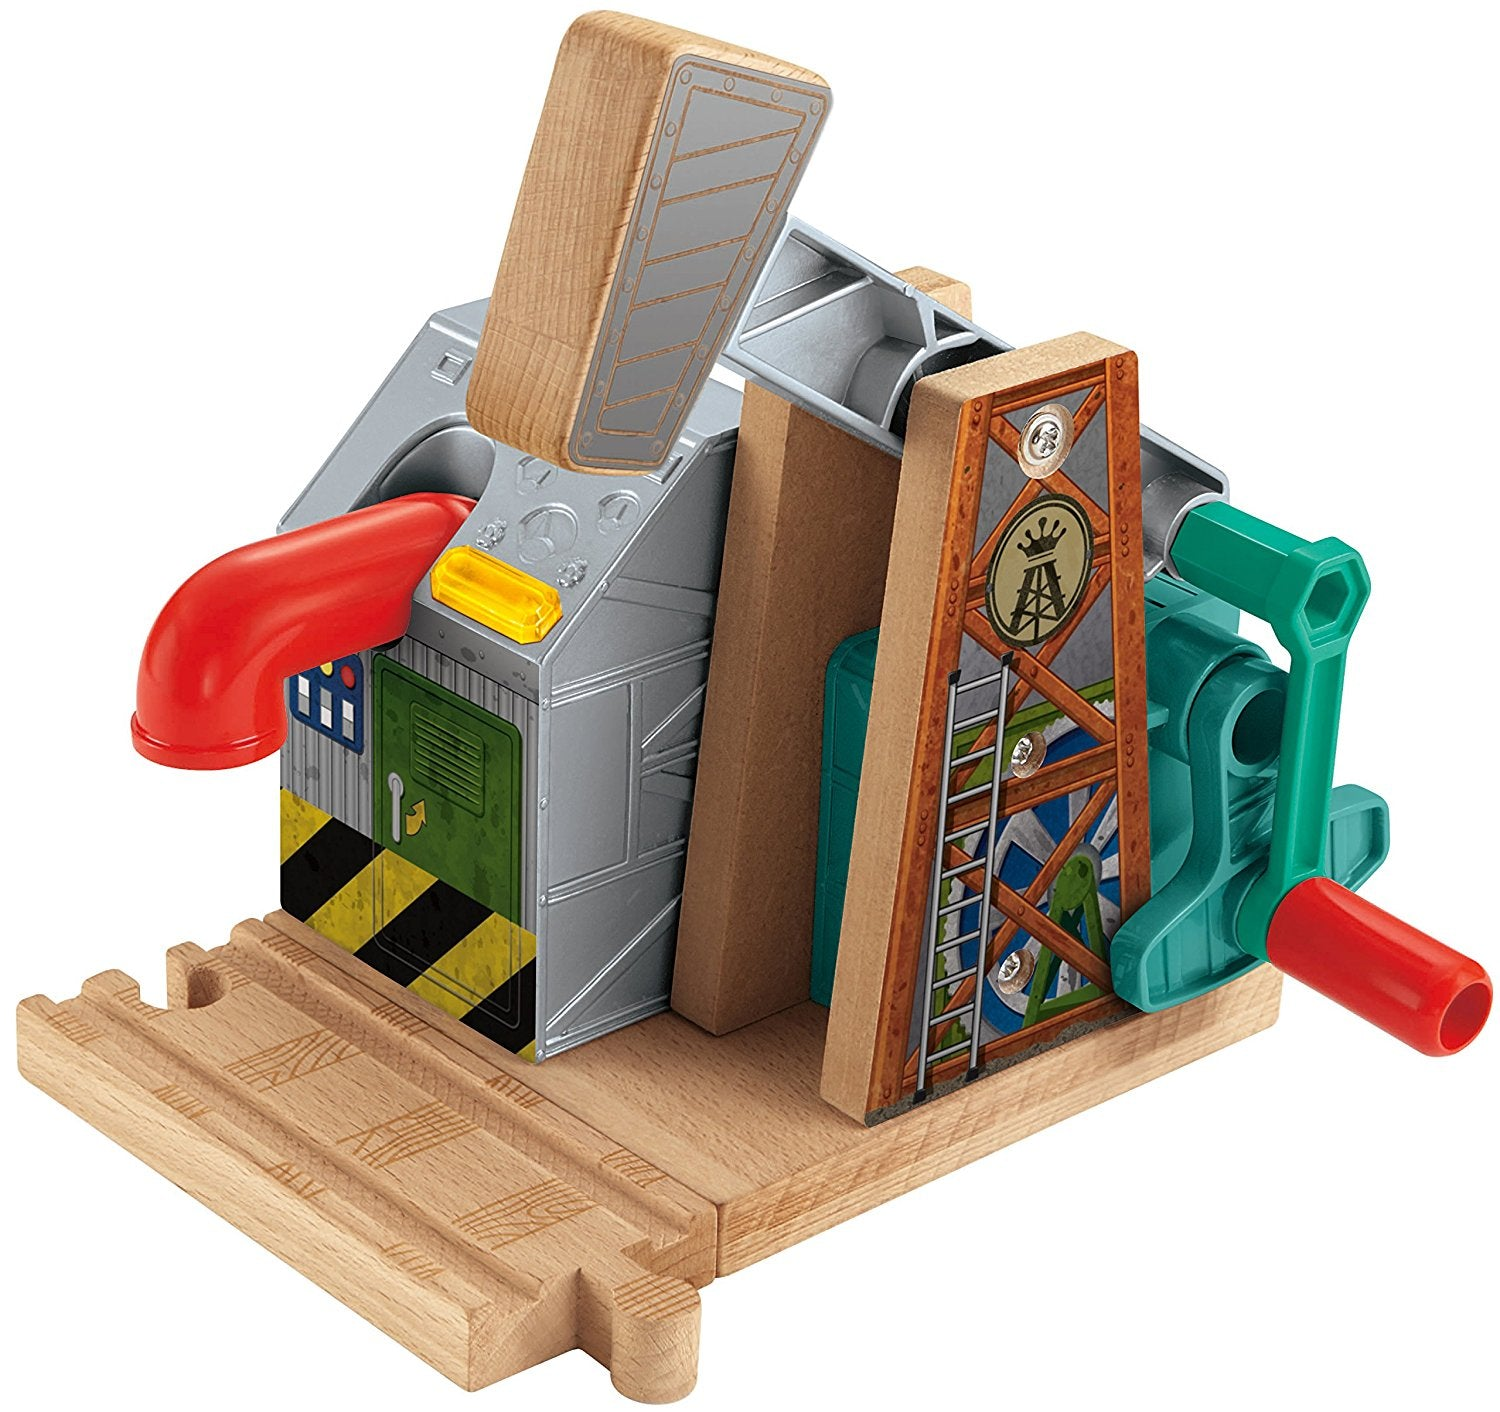 Fisher Price Thomas & Friends Wooden Railway, Sodor Oil Derrick - Battery Operated CDK44